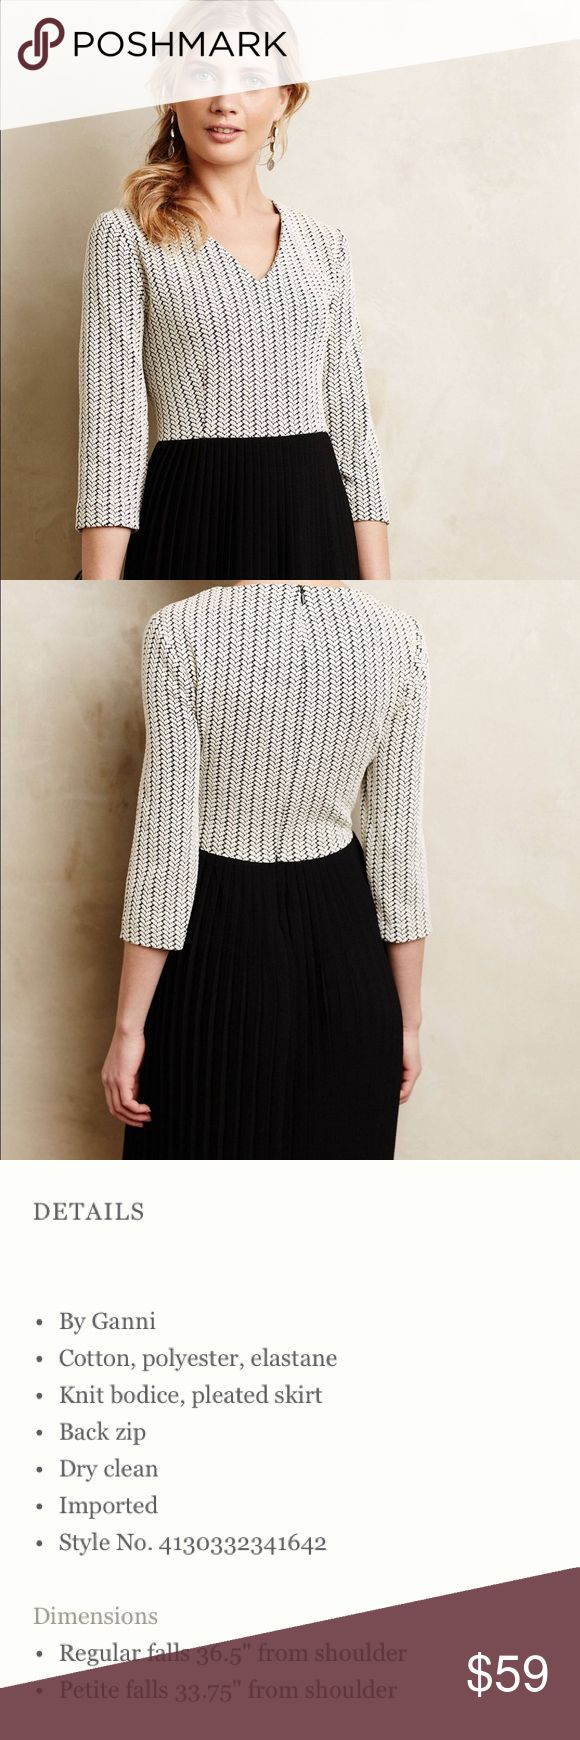 {Anthropologie} Ganni Crossknit Dress Sophisticated knit dress with sleeves and float pleated skirt. Flattering and simple silhouette. Falls to knee. Easy to dress up or down. (Reasonable offers welcome!) Anthropologie Dresses